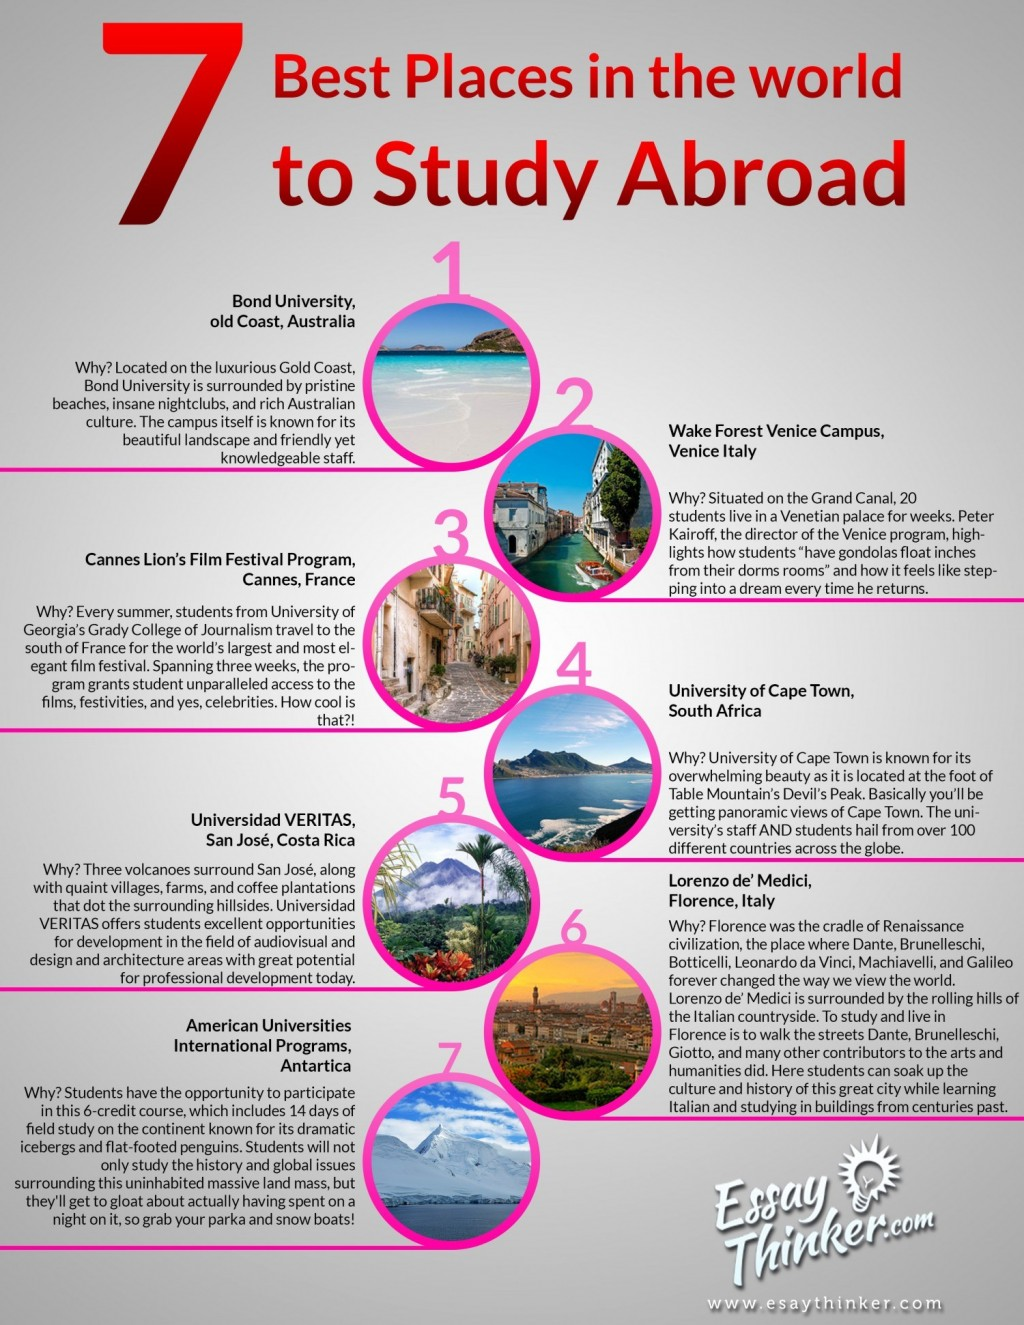 009 Studying Abroad Essay Example Best Places In The World To Study 53f49ac1d4c9b W1500 Beautiful Sample Ielts Conclusion Pdf Large